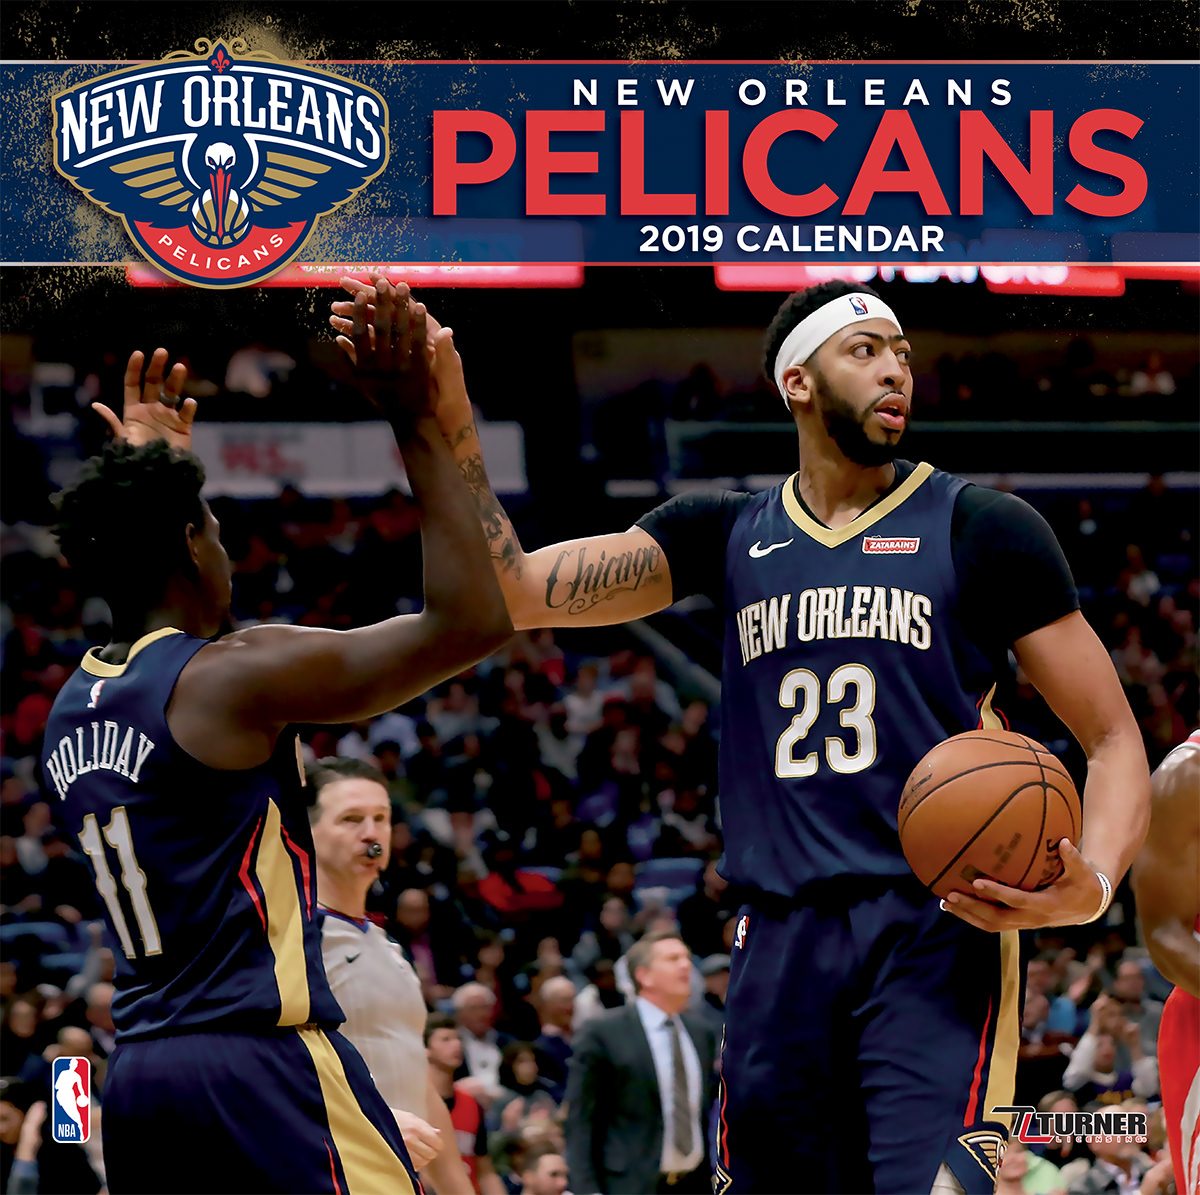 2019 12X12 TEAM WALL CALENDAR, NEW ORLEANS PELICANS